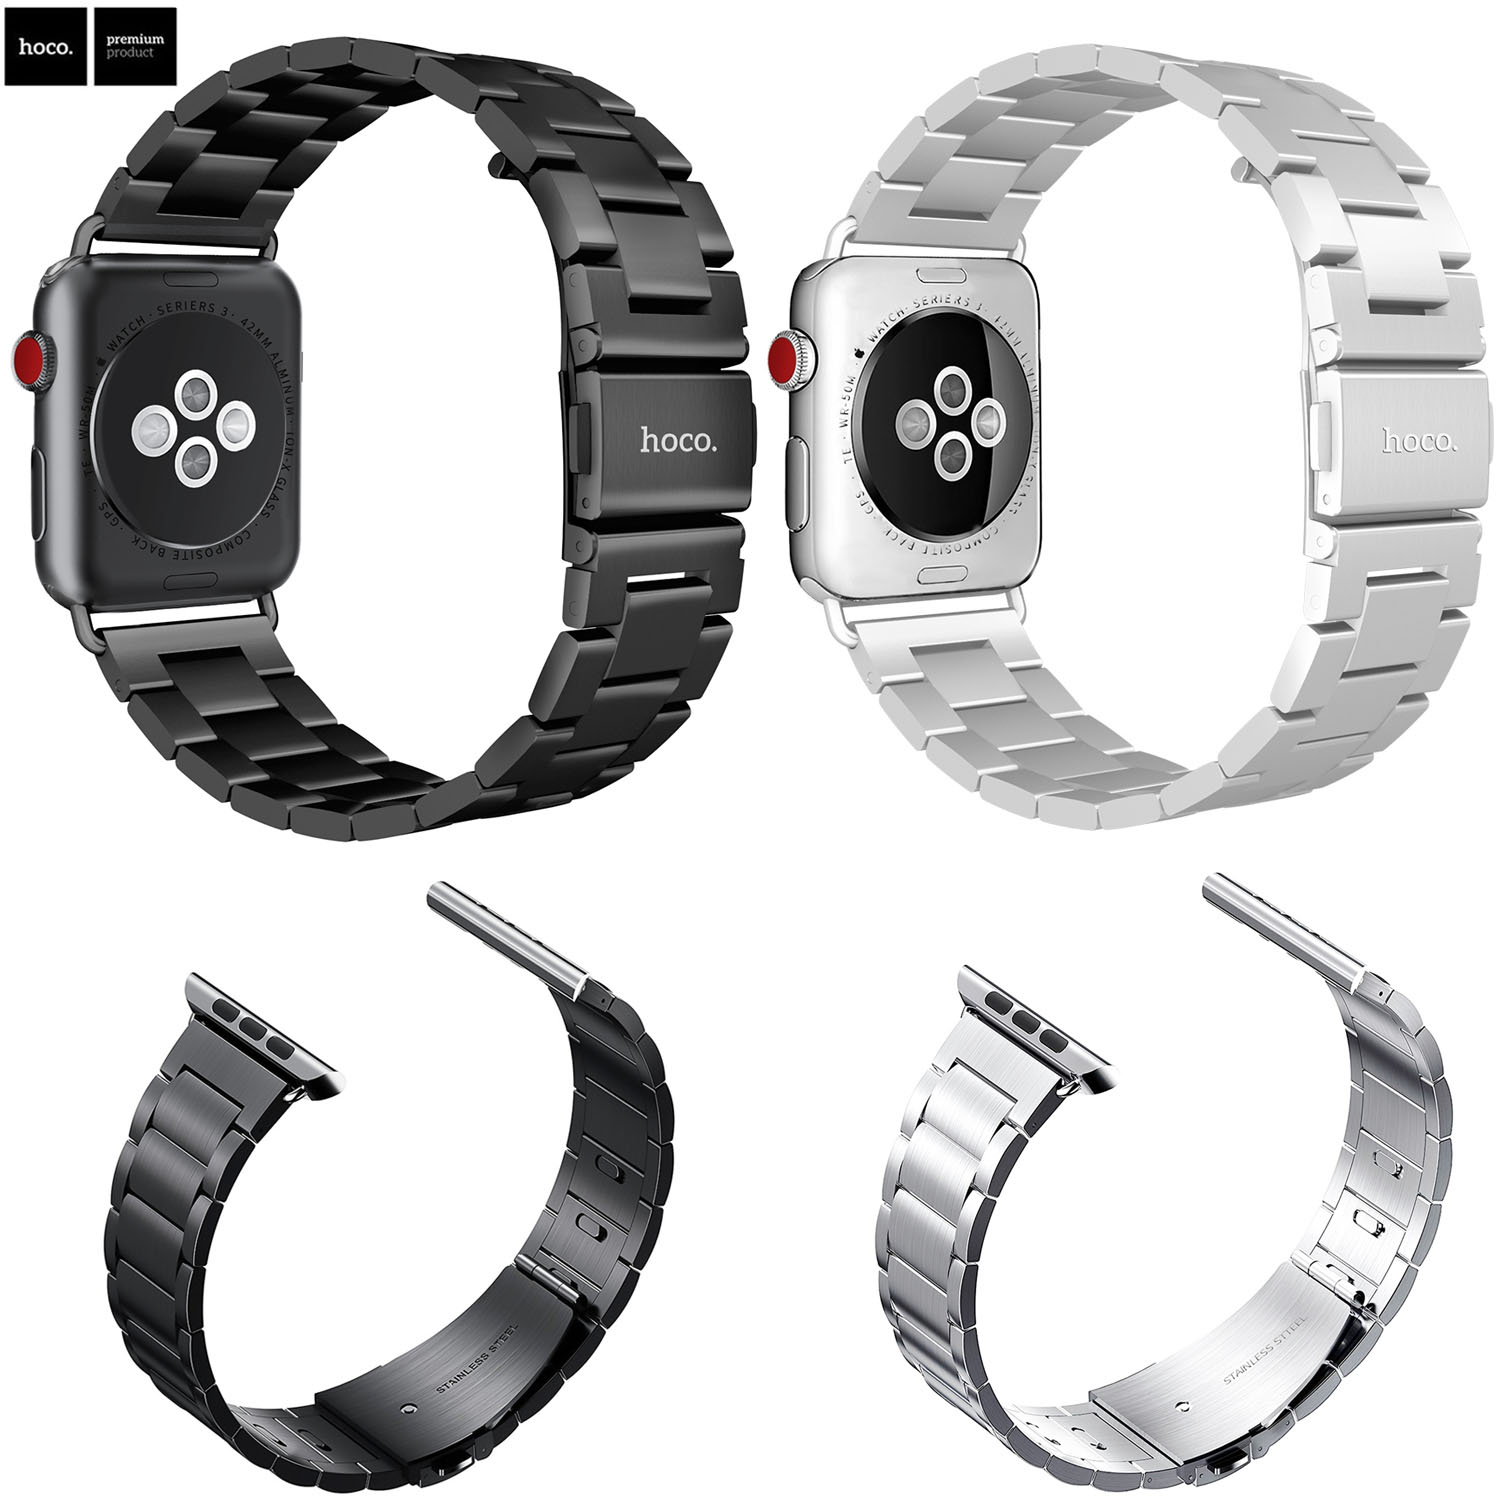 HOCO Sport Strap for Apple Watch Band 38mm 42mm iWatch 3 2 1 Stainless Steel Wrist Band Link Bracelet Watch Band Strap butterfly lock link bracelet watch band strap for apple watch 38mm 42mm stainless steel